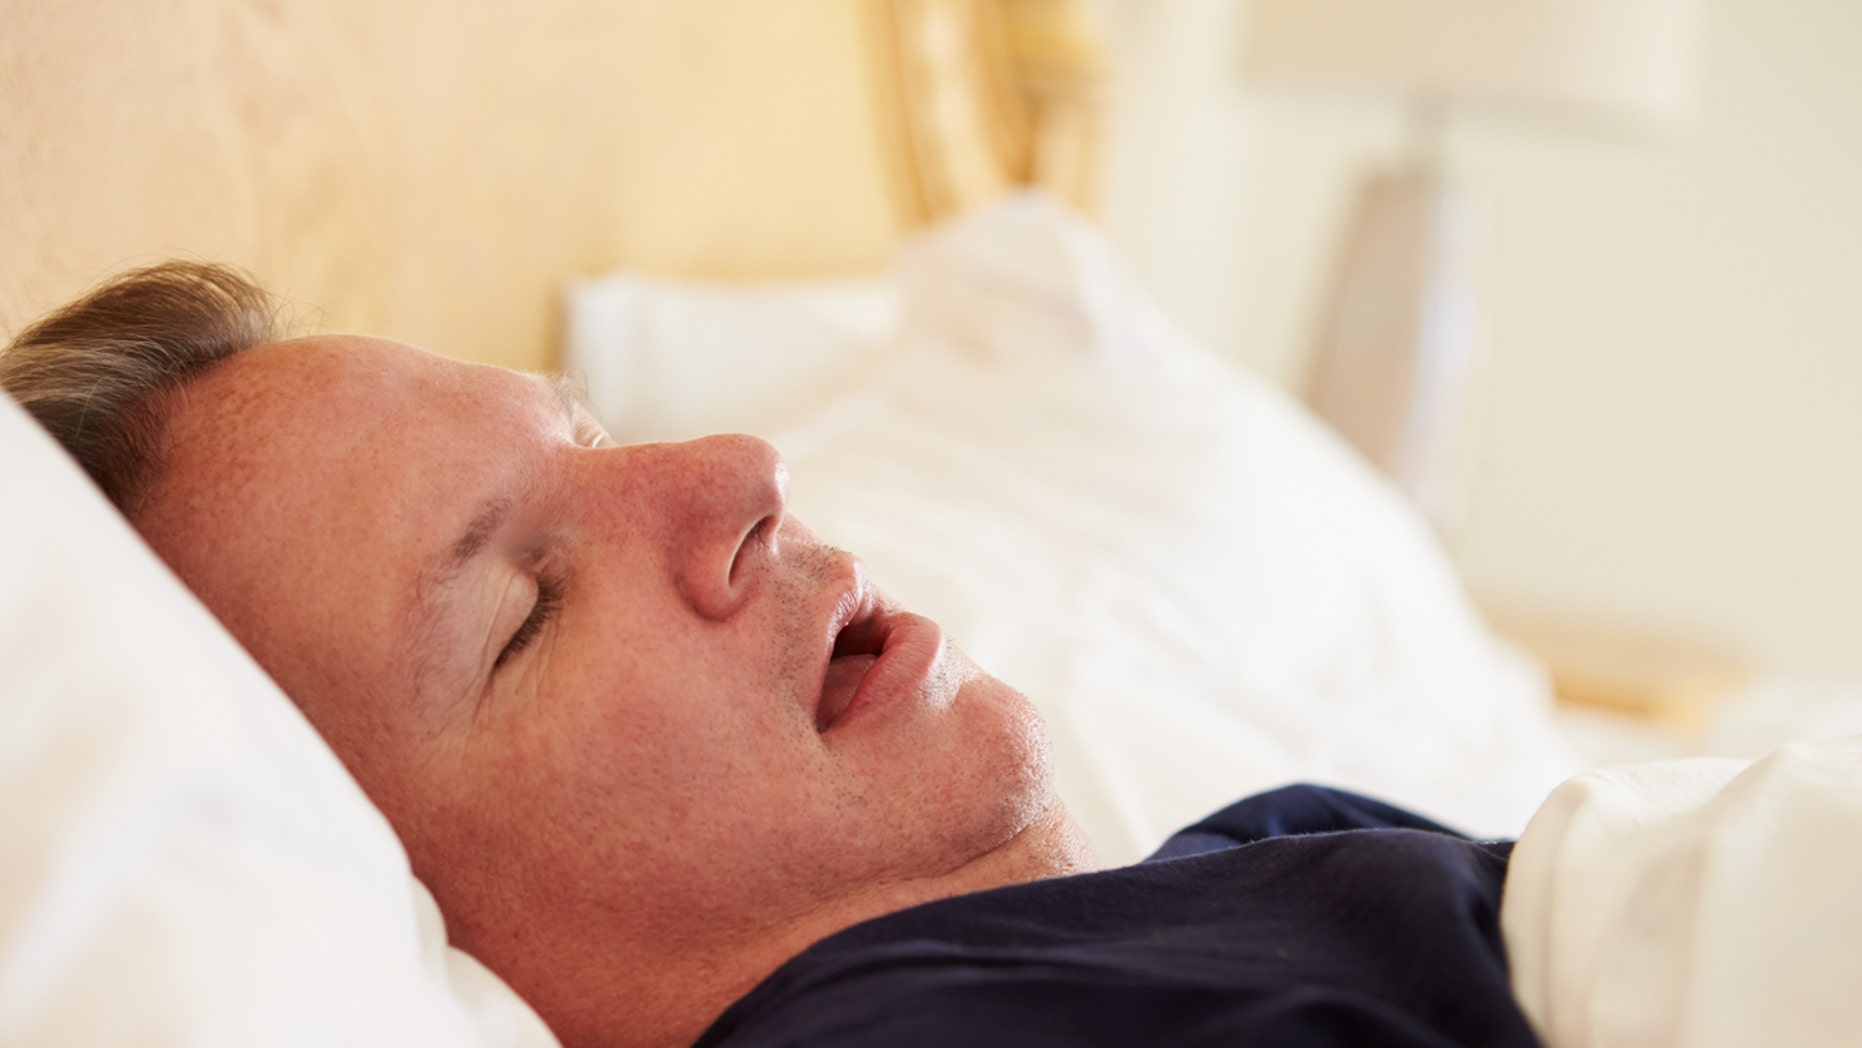 Overweight Man Asleep In Bed Snoring At Home On His Own